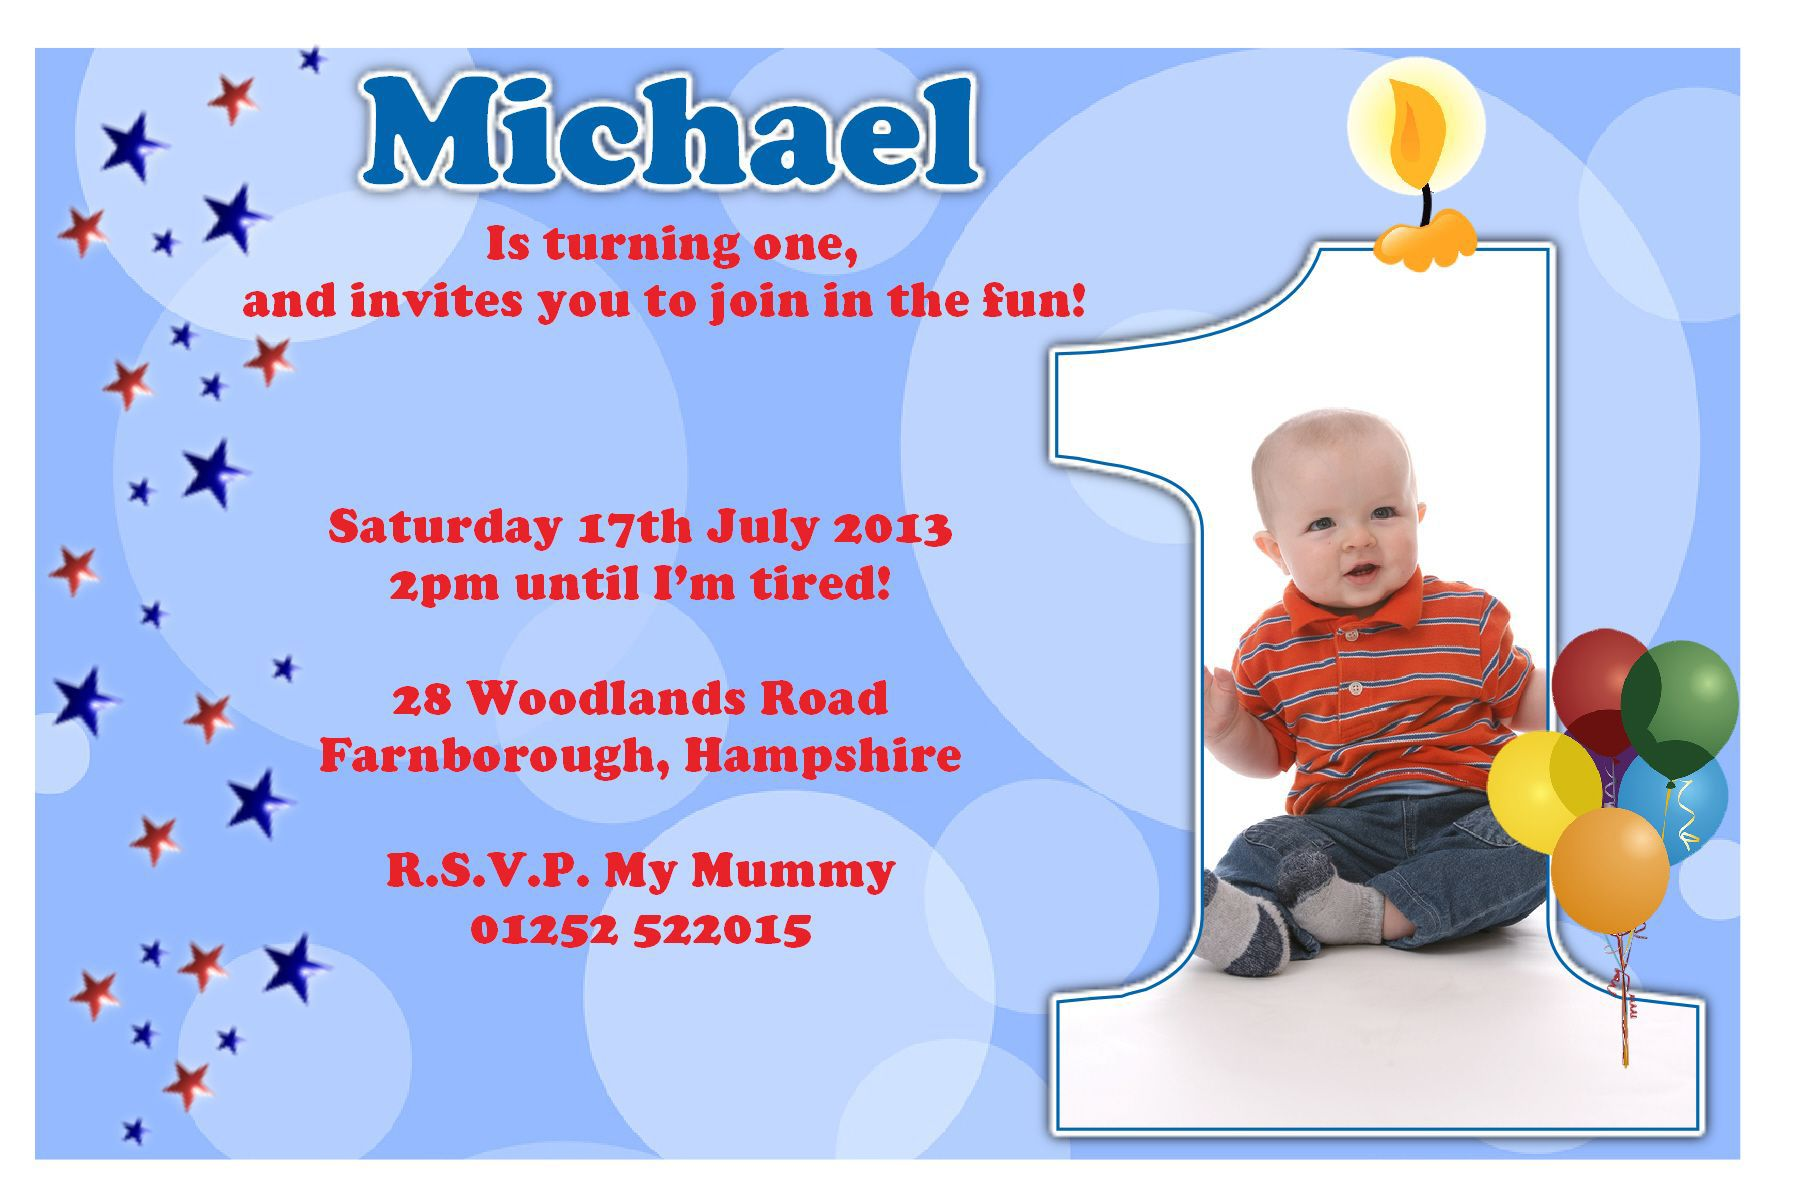 Birthday Party Invitation Template Sample – Invitation Greetings for Birthdays